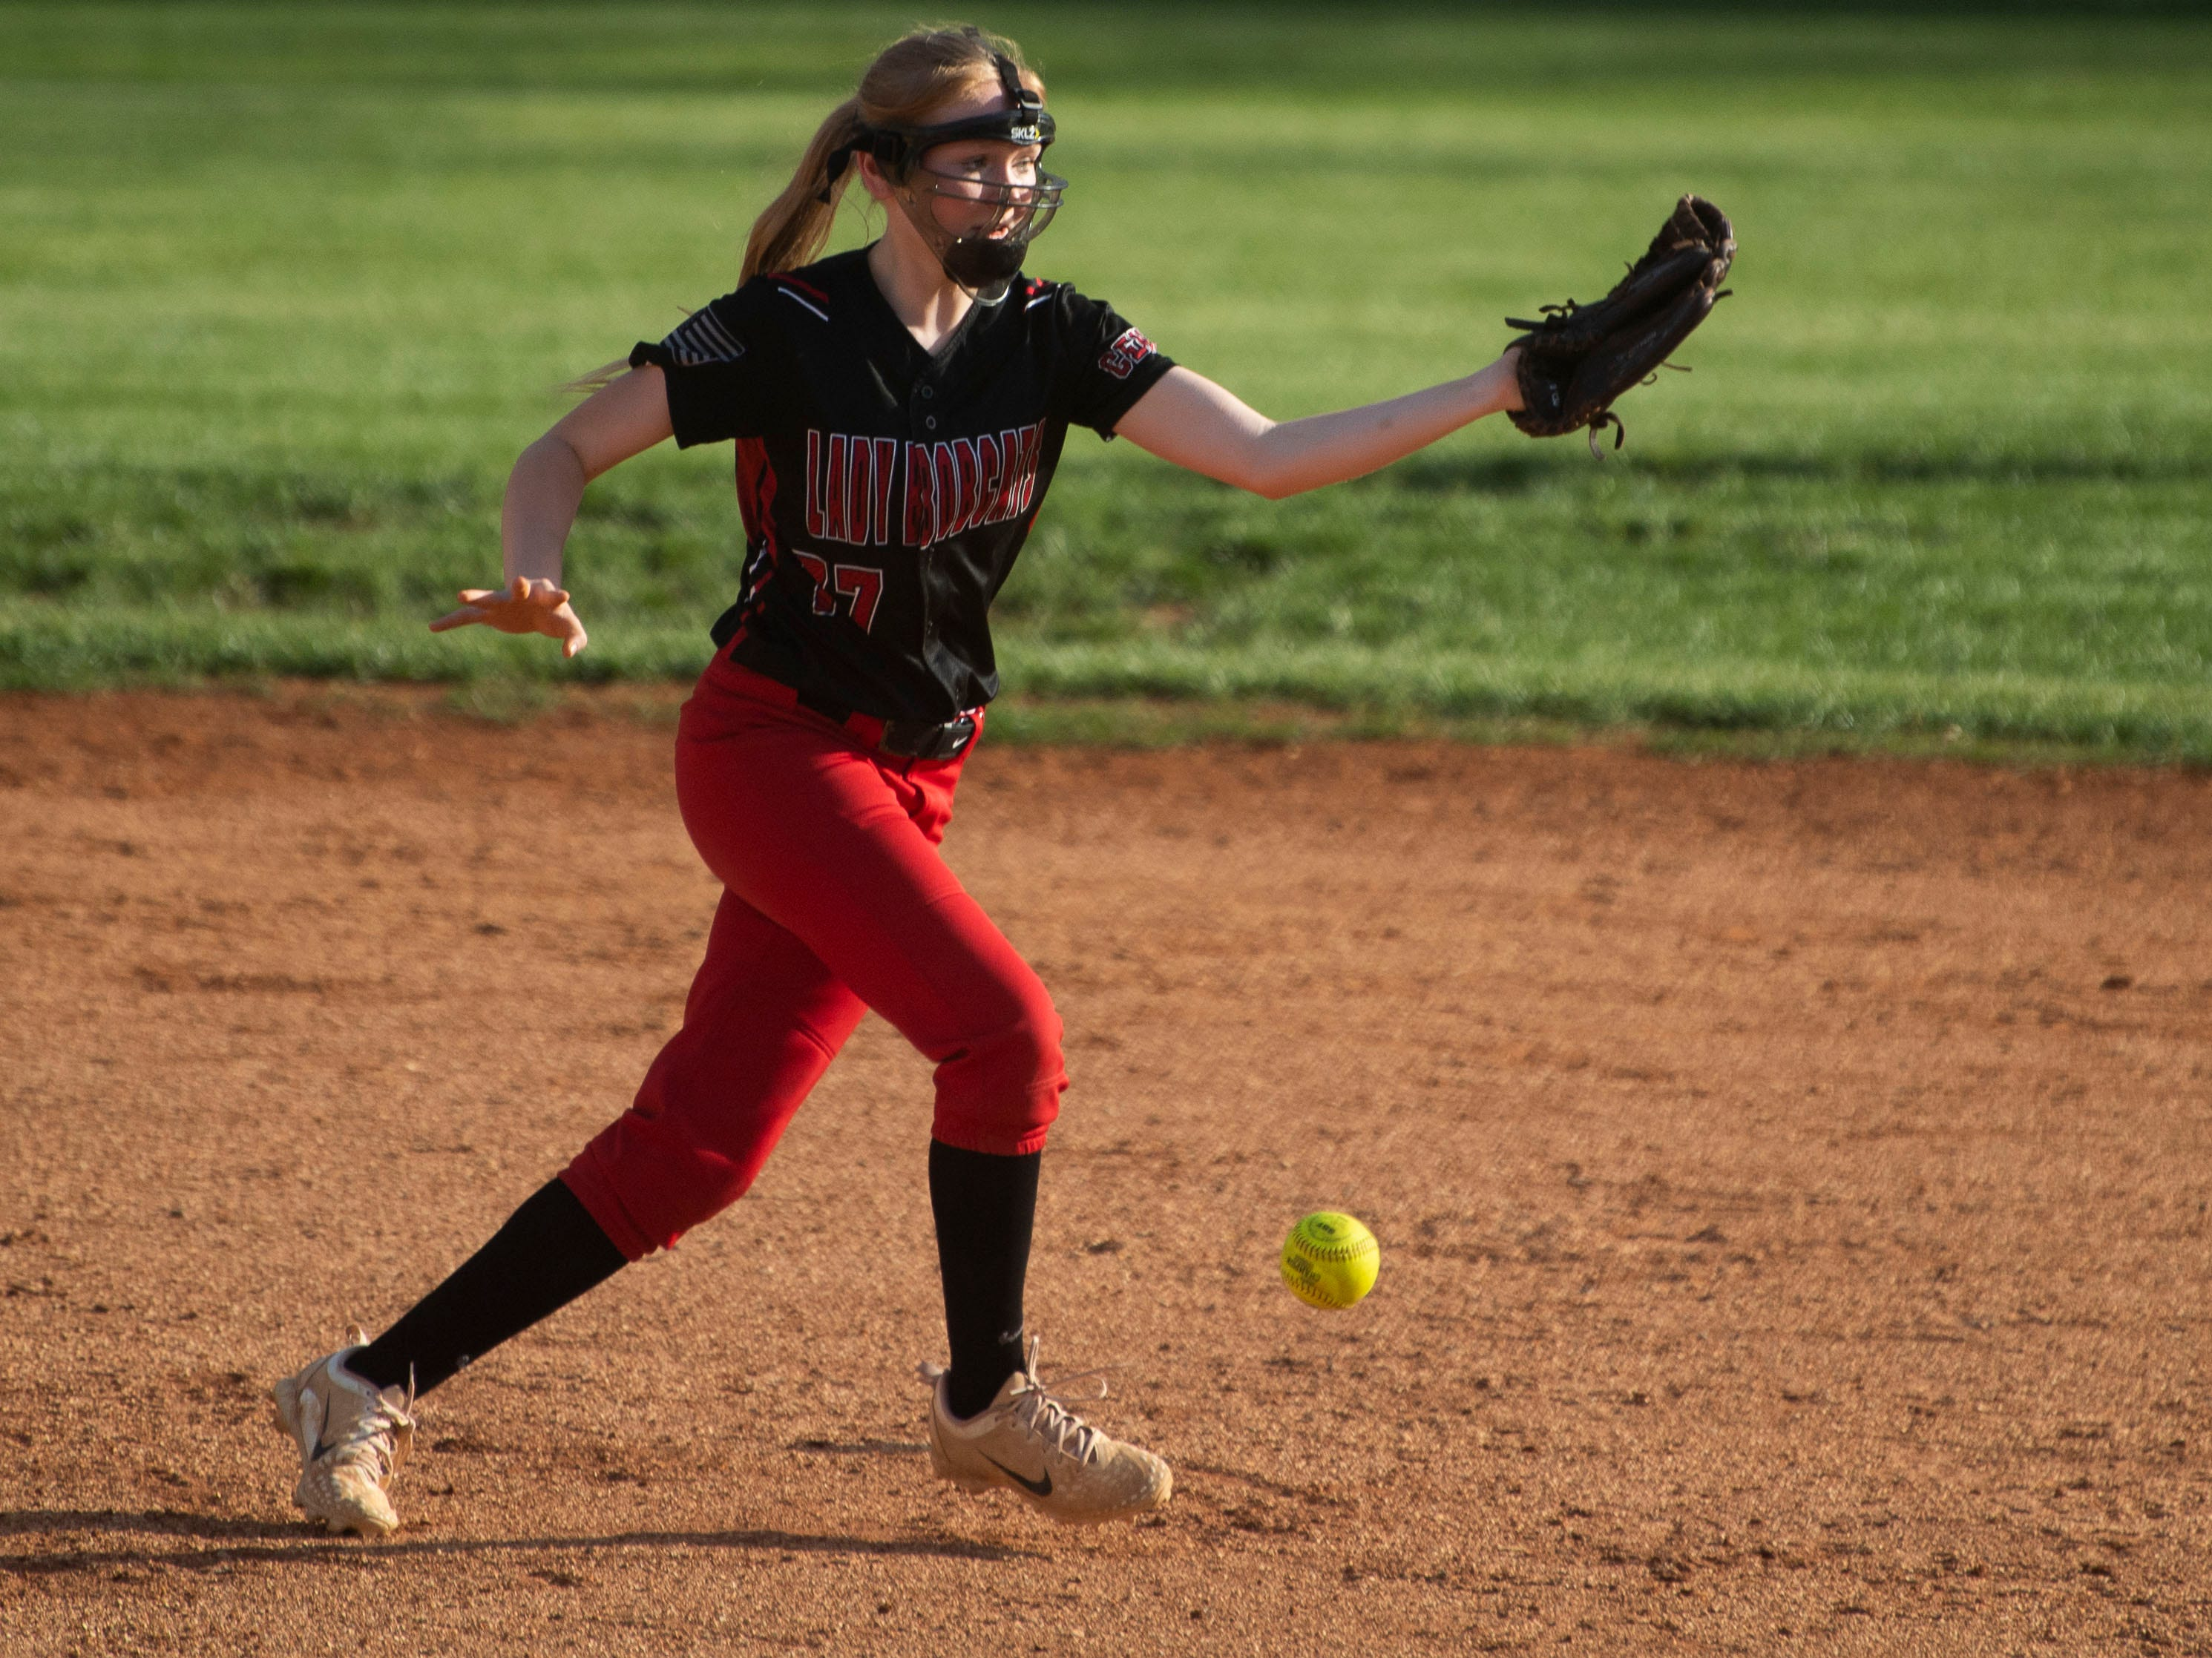 The ball slips past Central's Taylor Kelly during the game at Powell on Thursday, April 11, 2019.